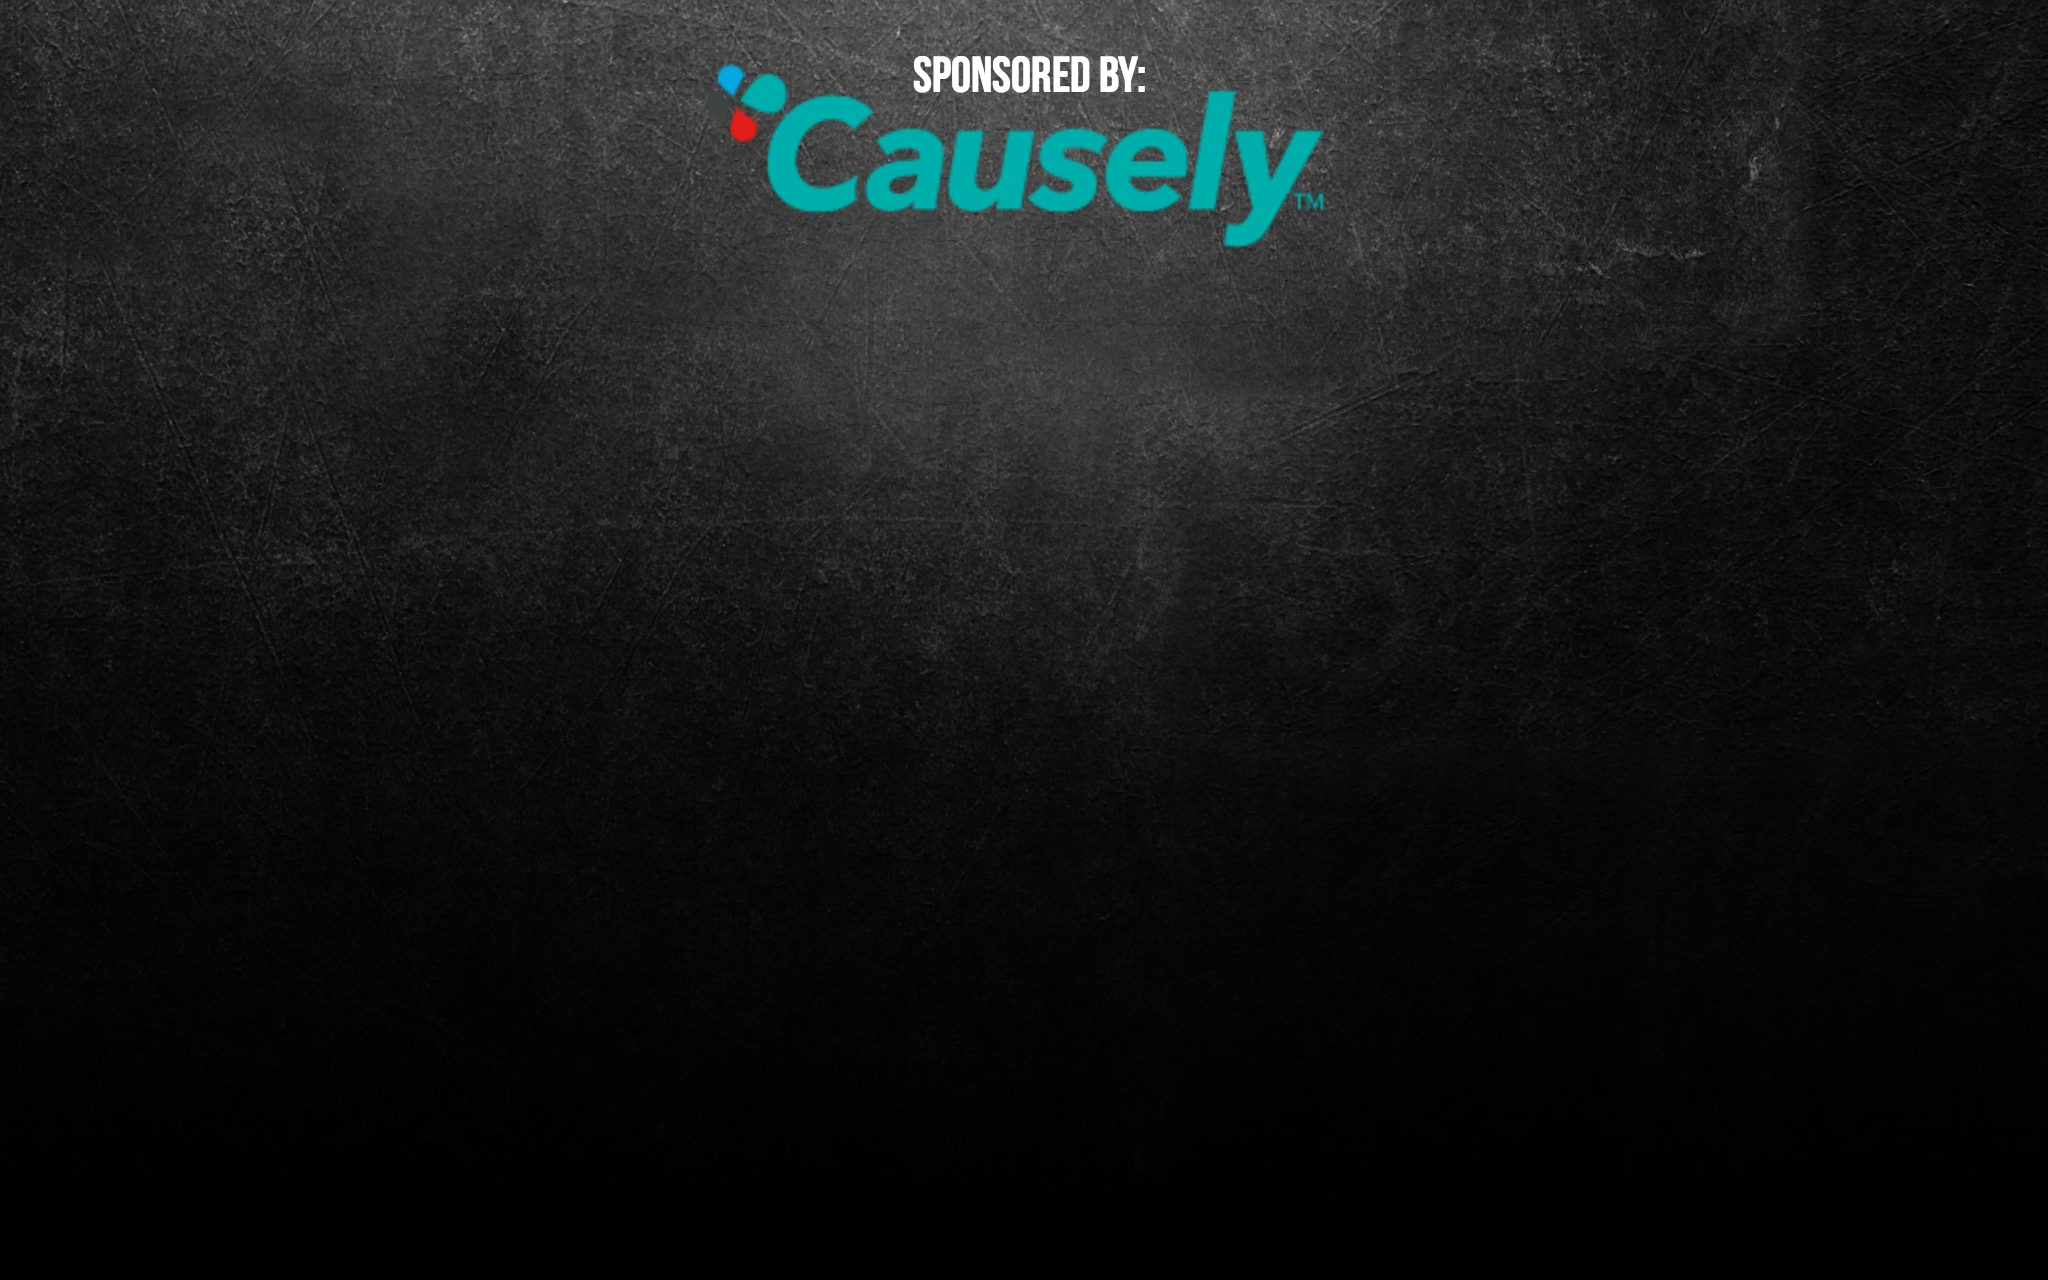 Episode 053: Causely Shows Fitness Studios How to Get More Members While Being Charitable